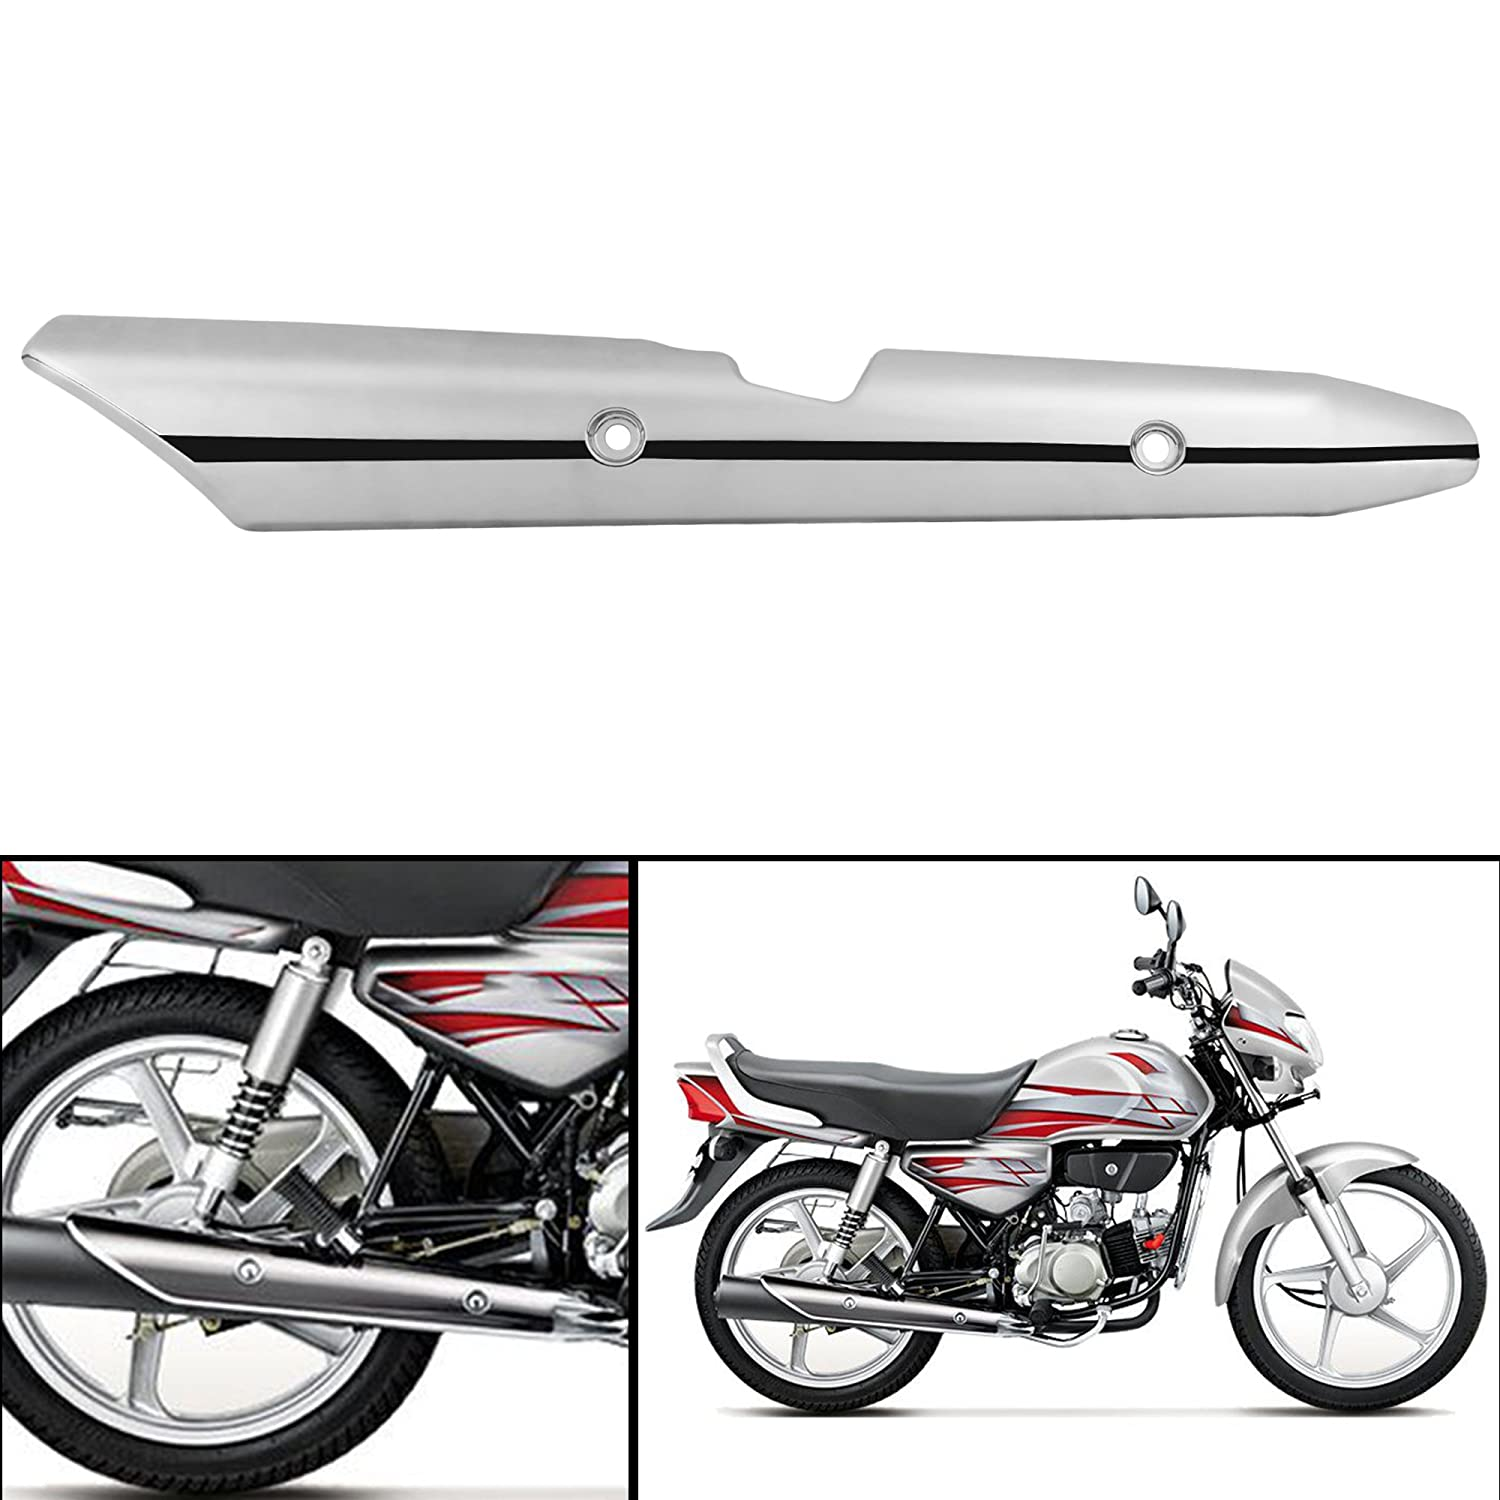 Autofy Metal Silencer Guard Silencer Cover For Hero Hf Deluxe Silver Amazon In Car Motorbike